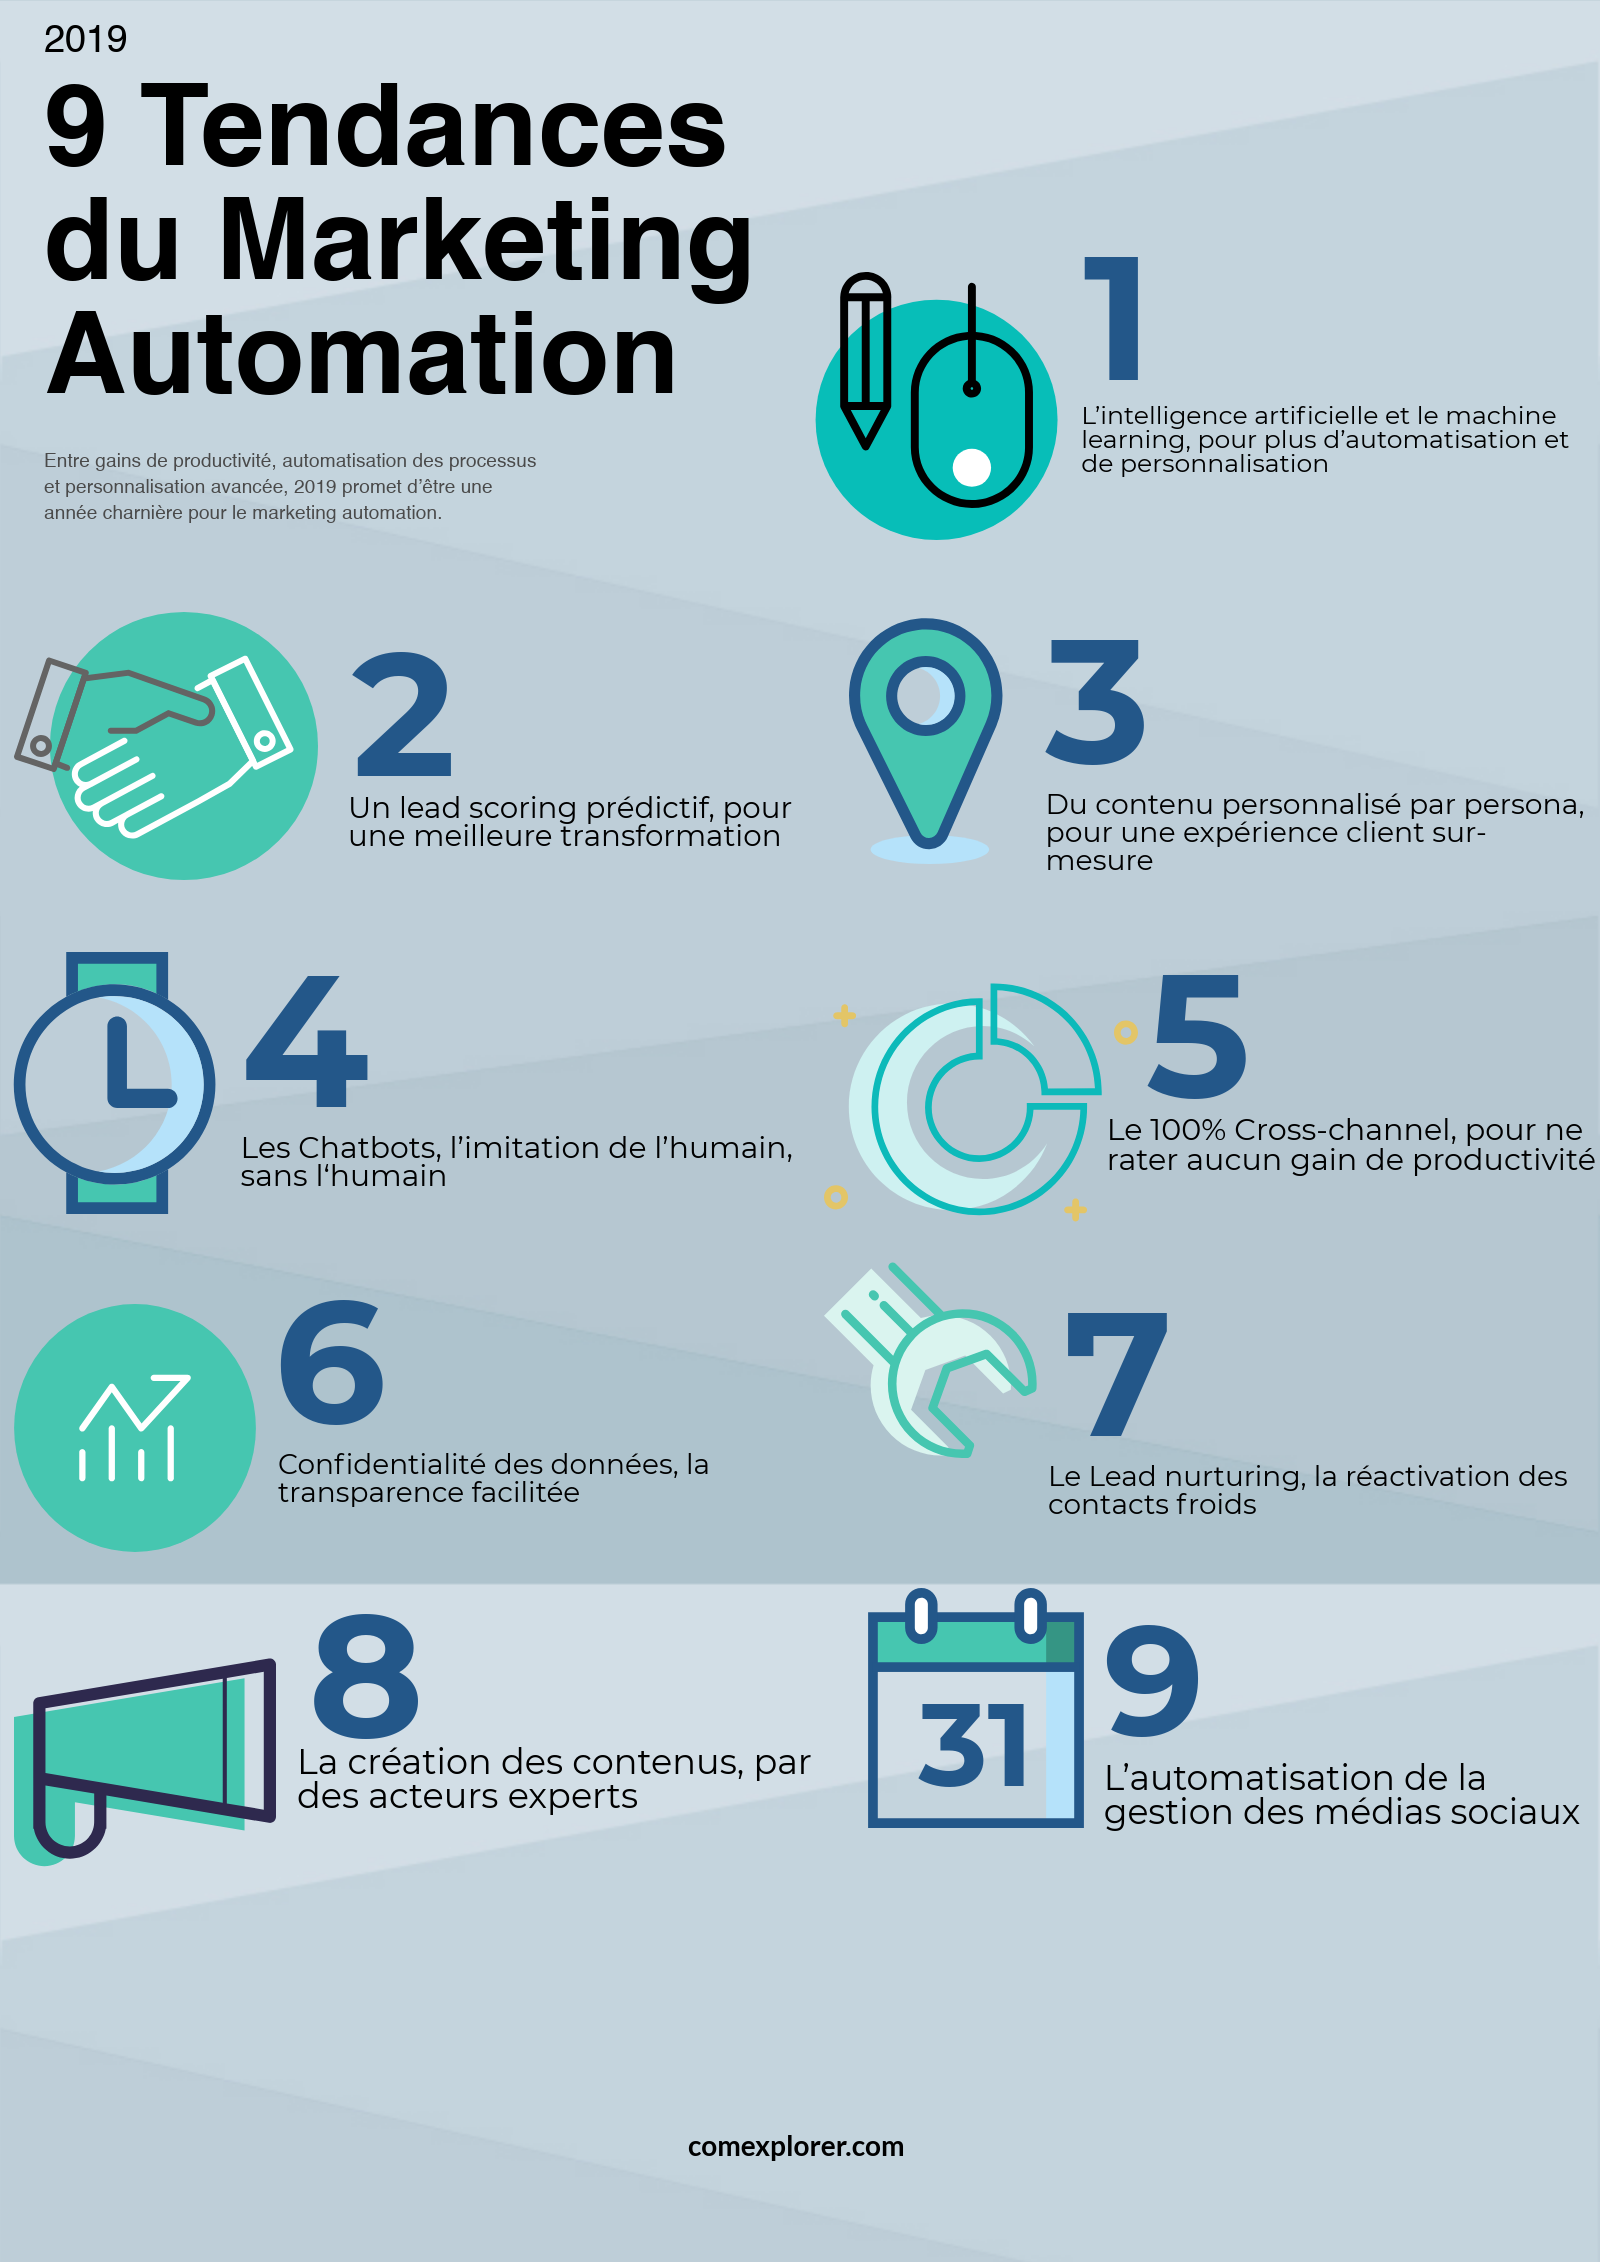 infographie-2019-tendances-marketing-automation